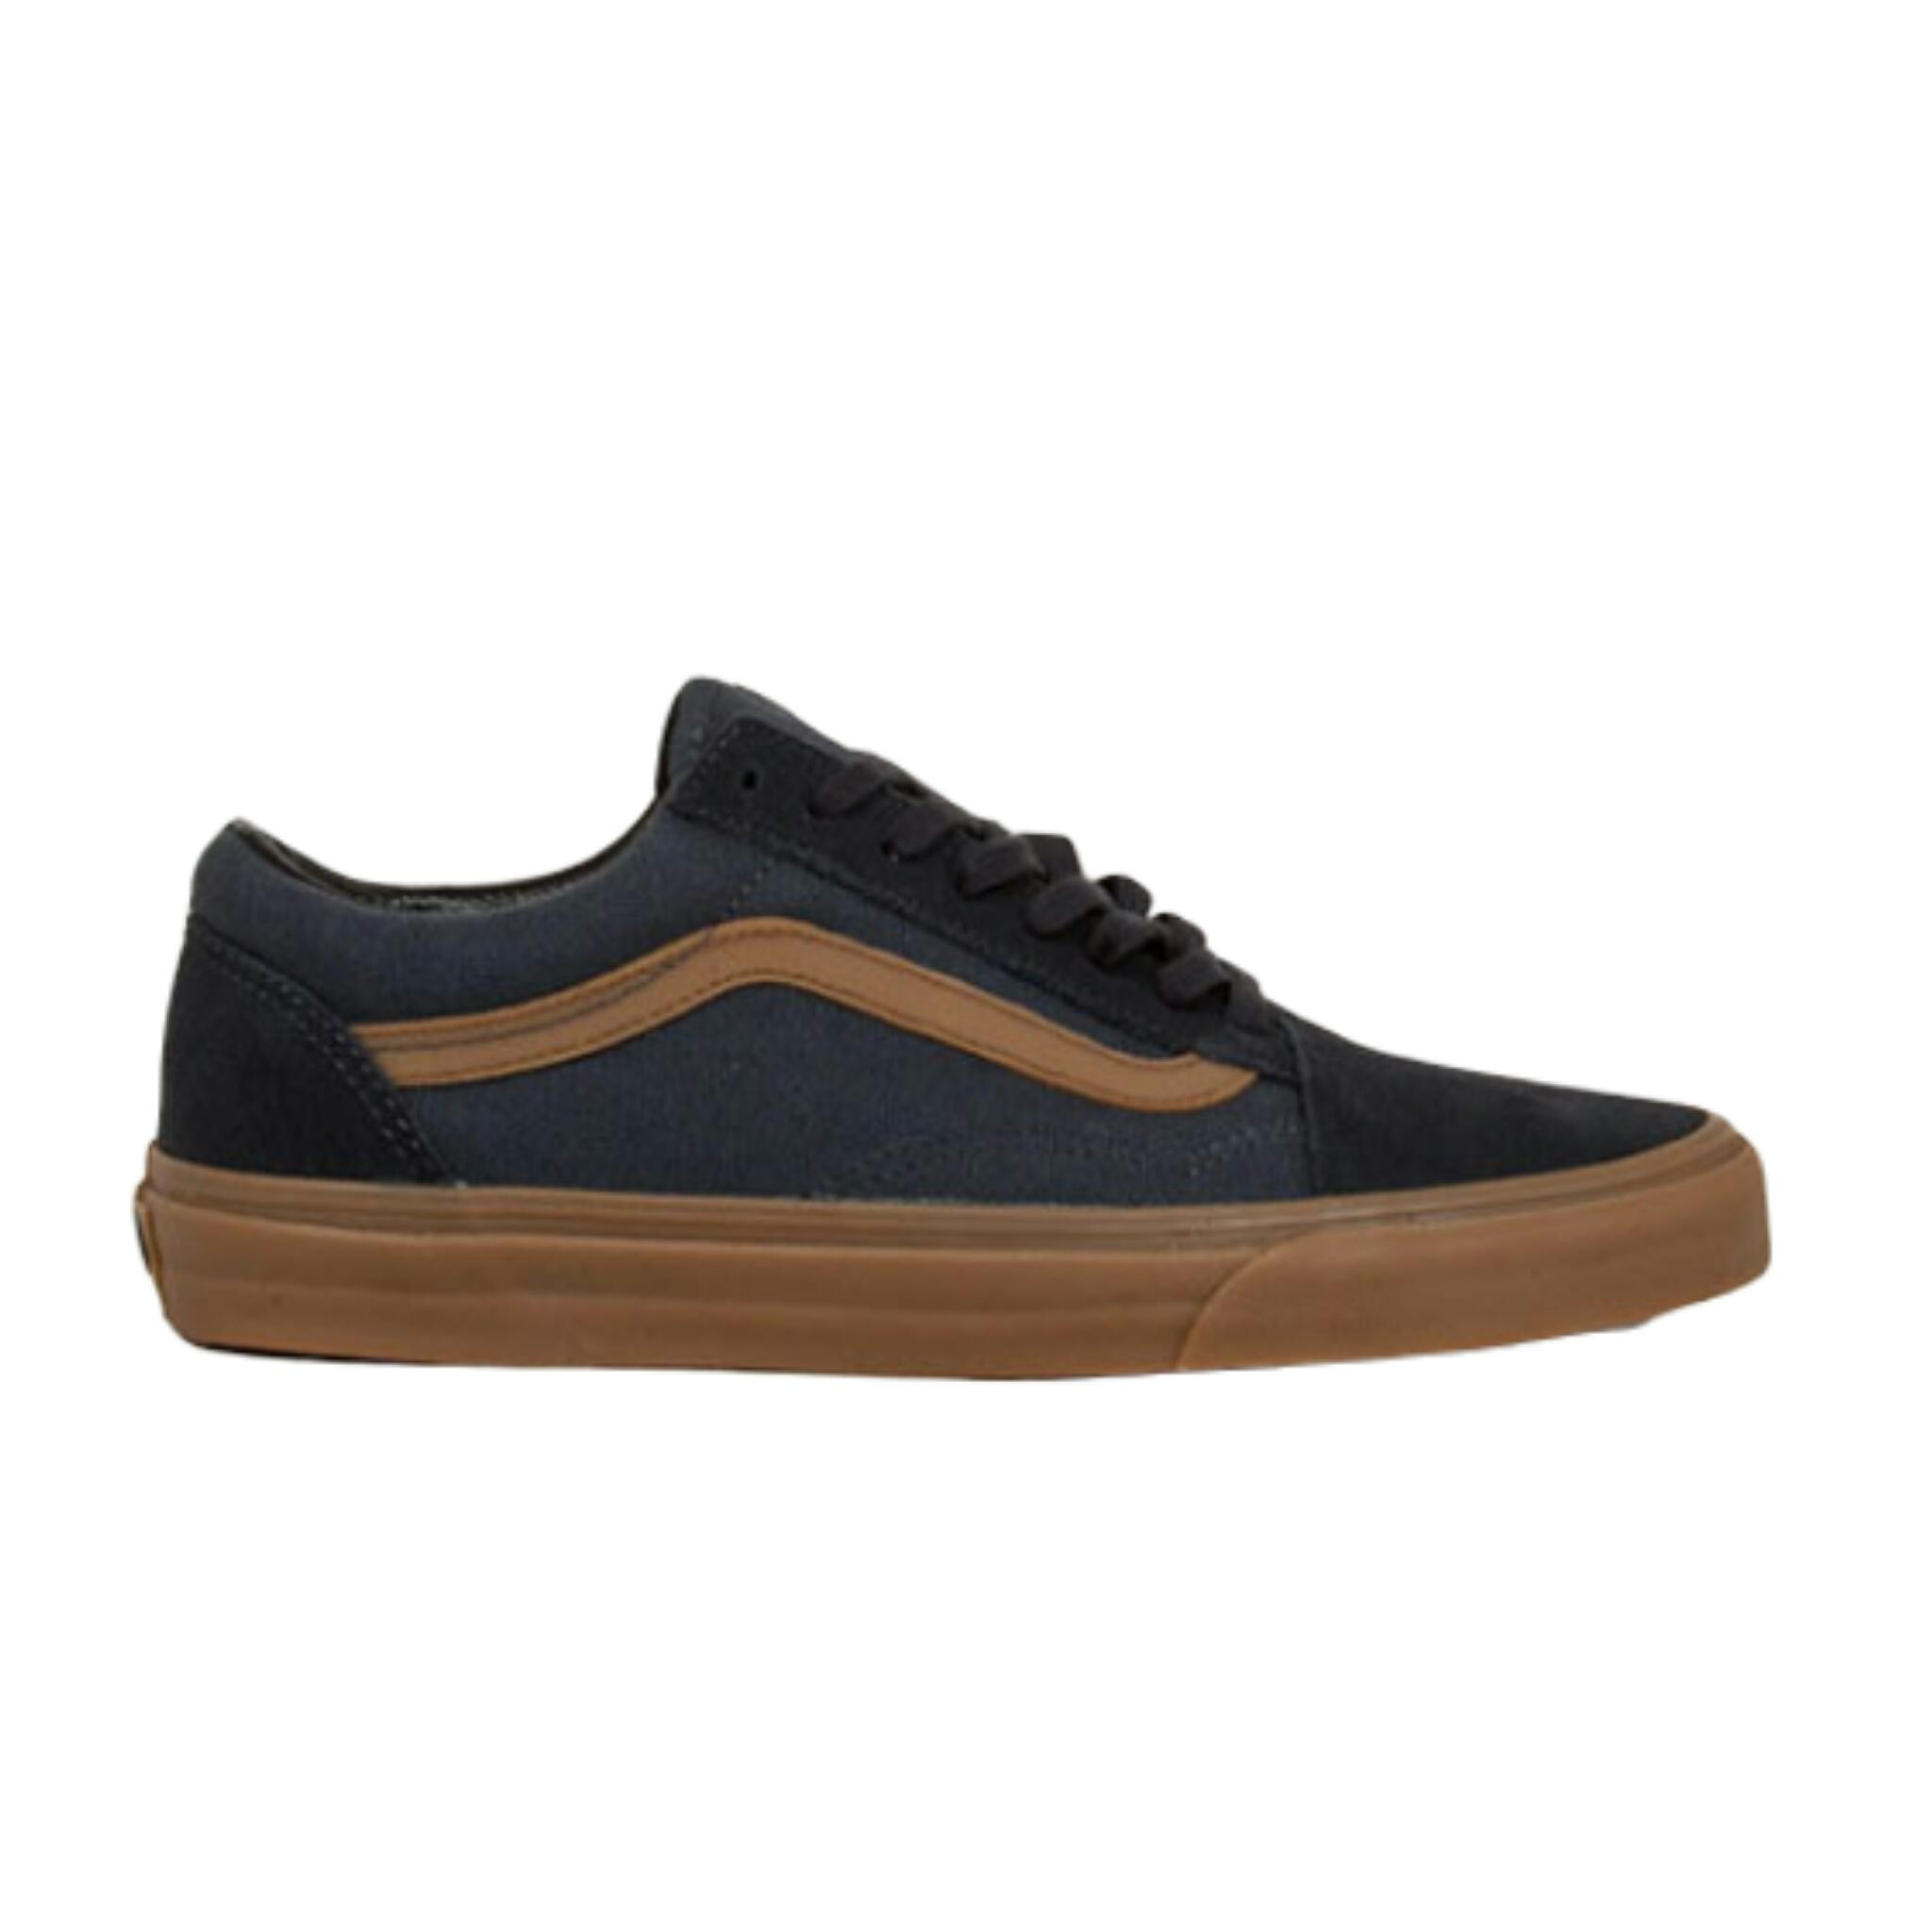 f1c69b9879a9 Old Skool Black Gum For Men. Boys Stylish Shoes Online In Stan Daraz Pk